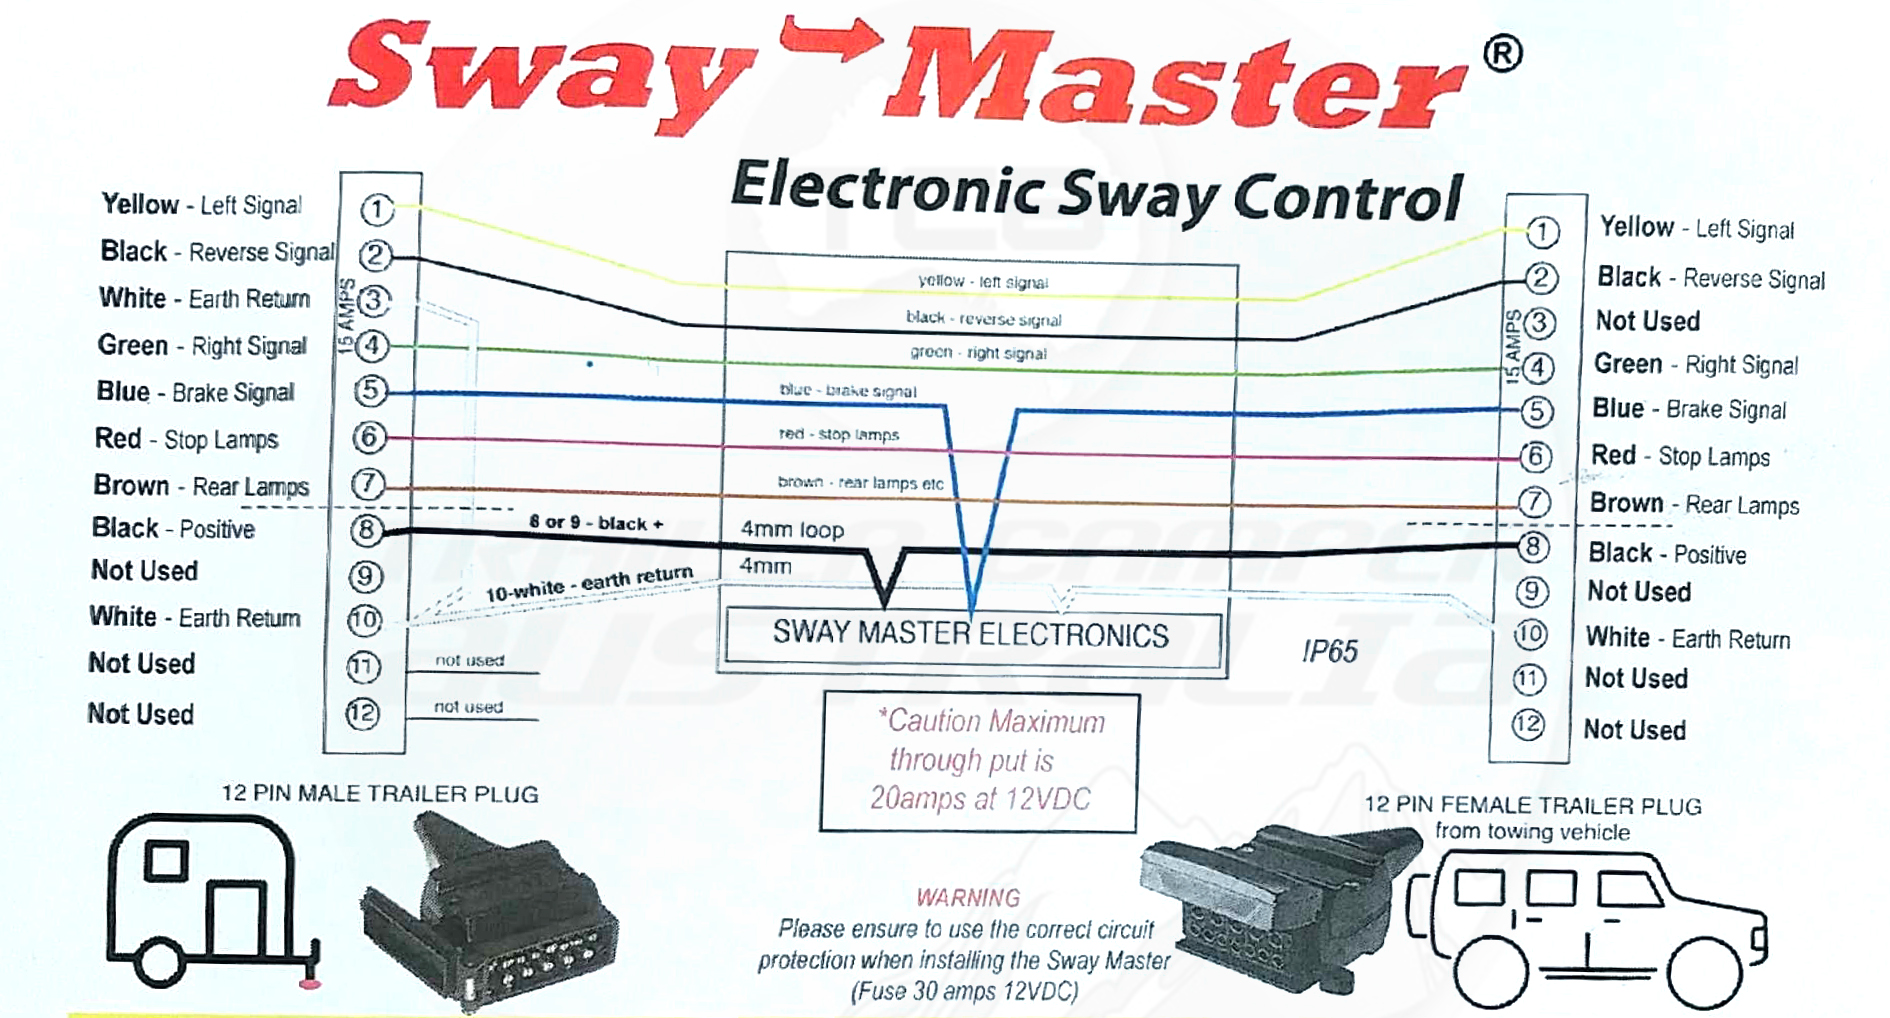 Hayes Sway Master Electric Trailer Control Wiring Code Australia Features And Benefits